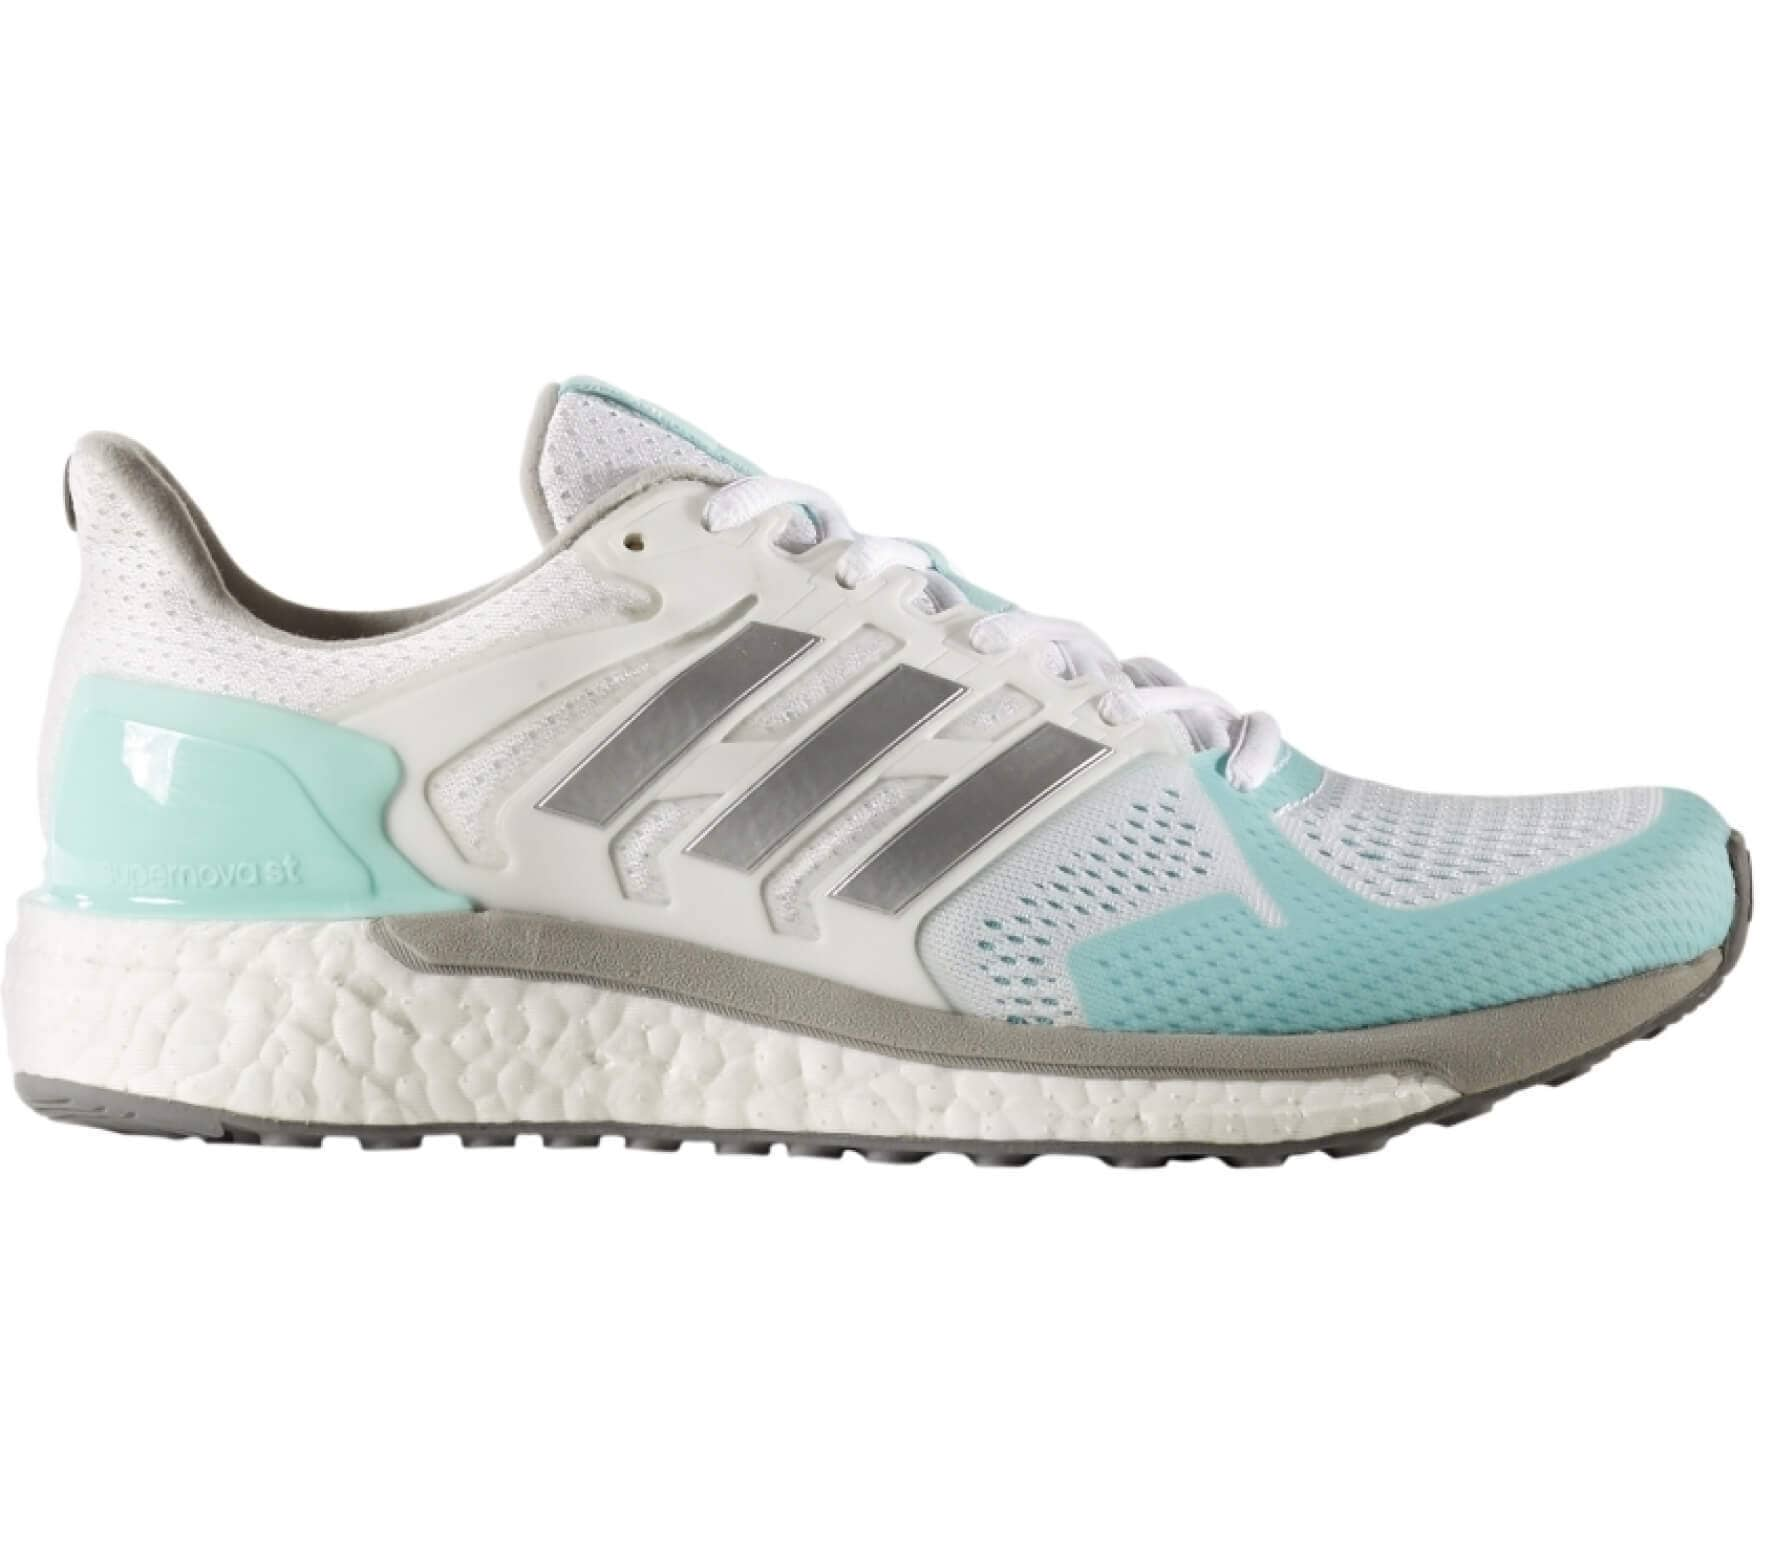 77874ba11ffce5 Adidas - Supernova ST women s running shoes (white light yellow ...